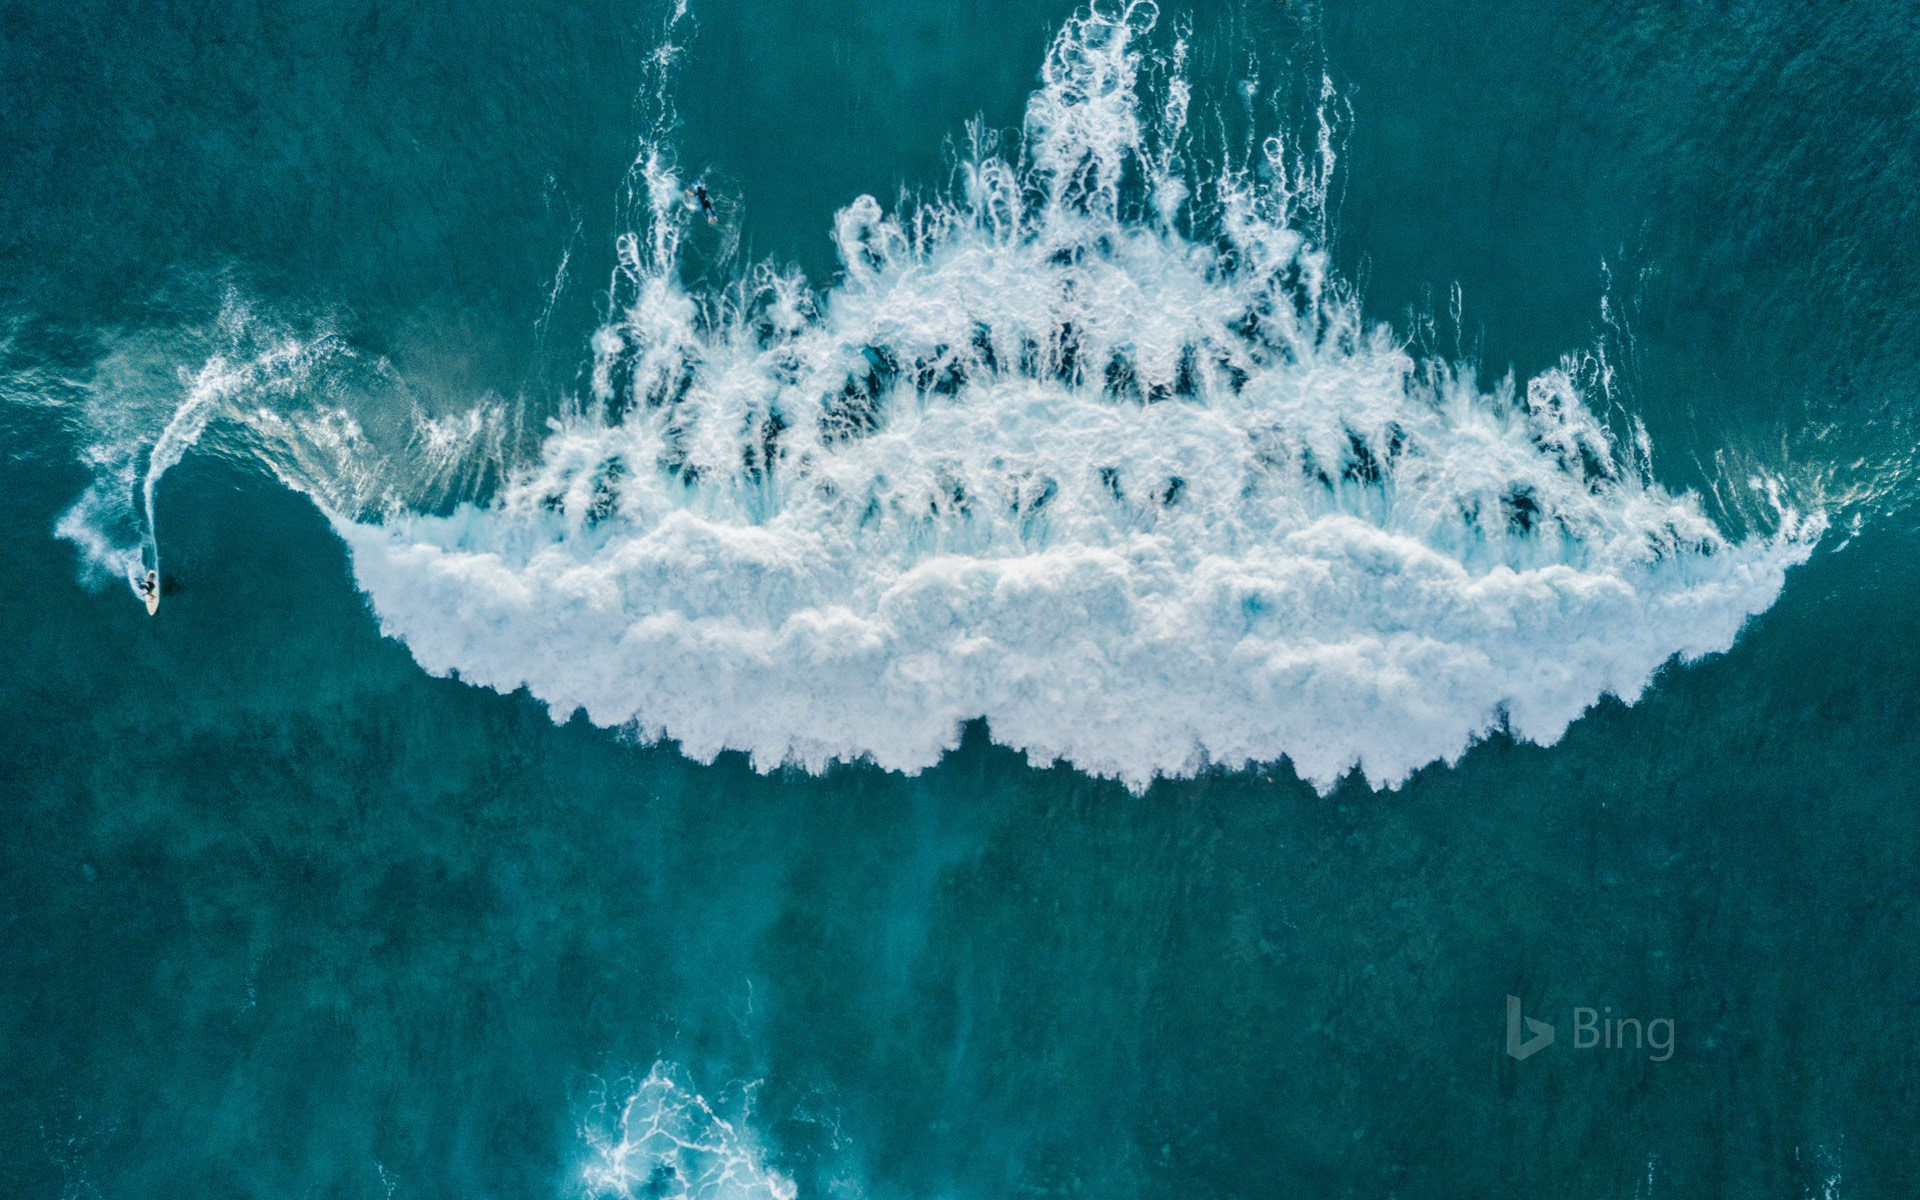 Aerial view of surfer catching a wave, Tenerife, Canary Islands, Spain